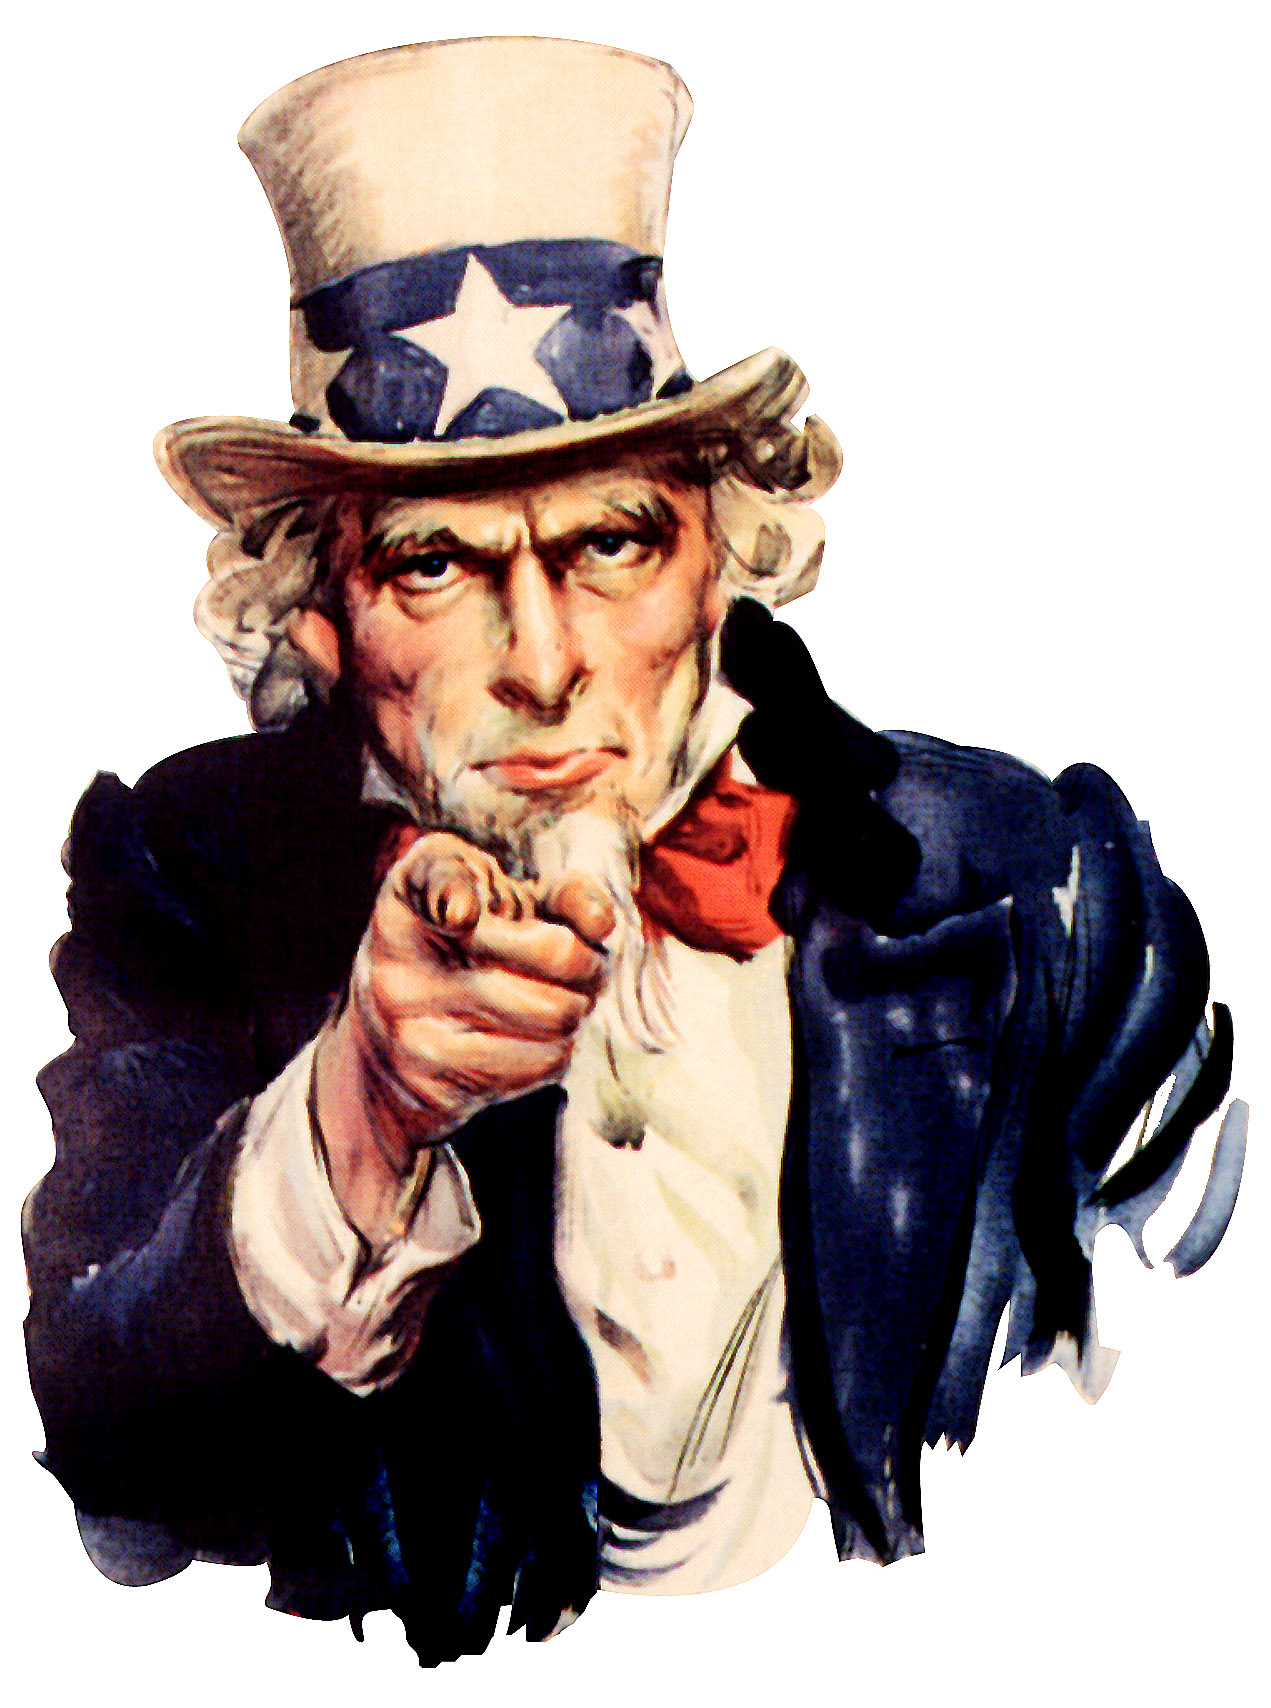 Illustration of Uncle Sam pointing at the viewer.